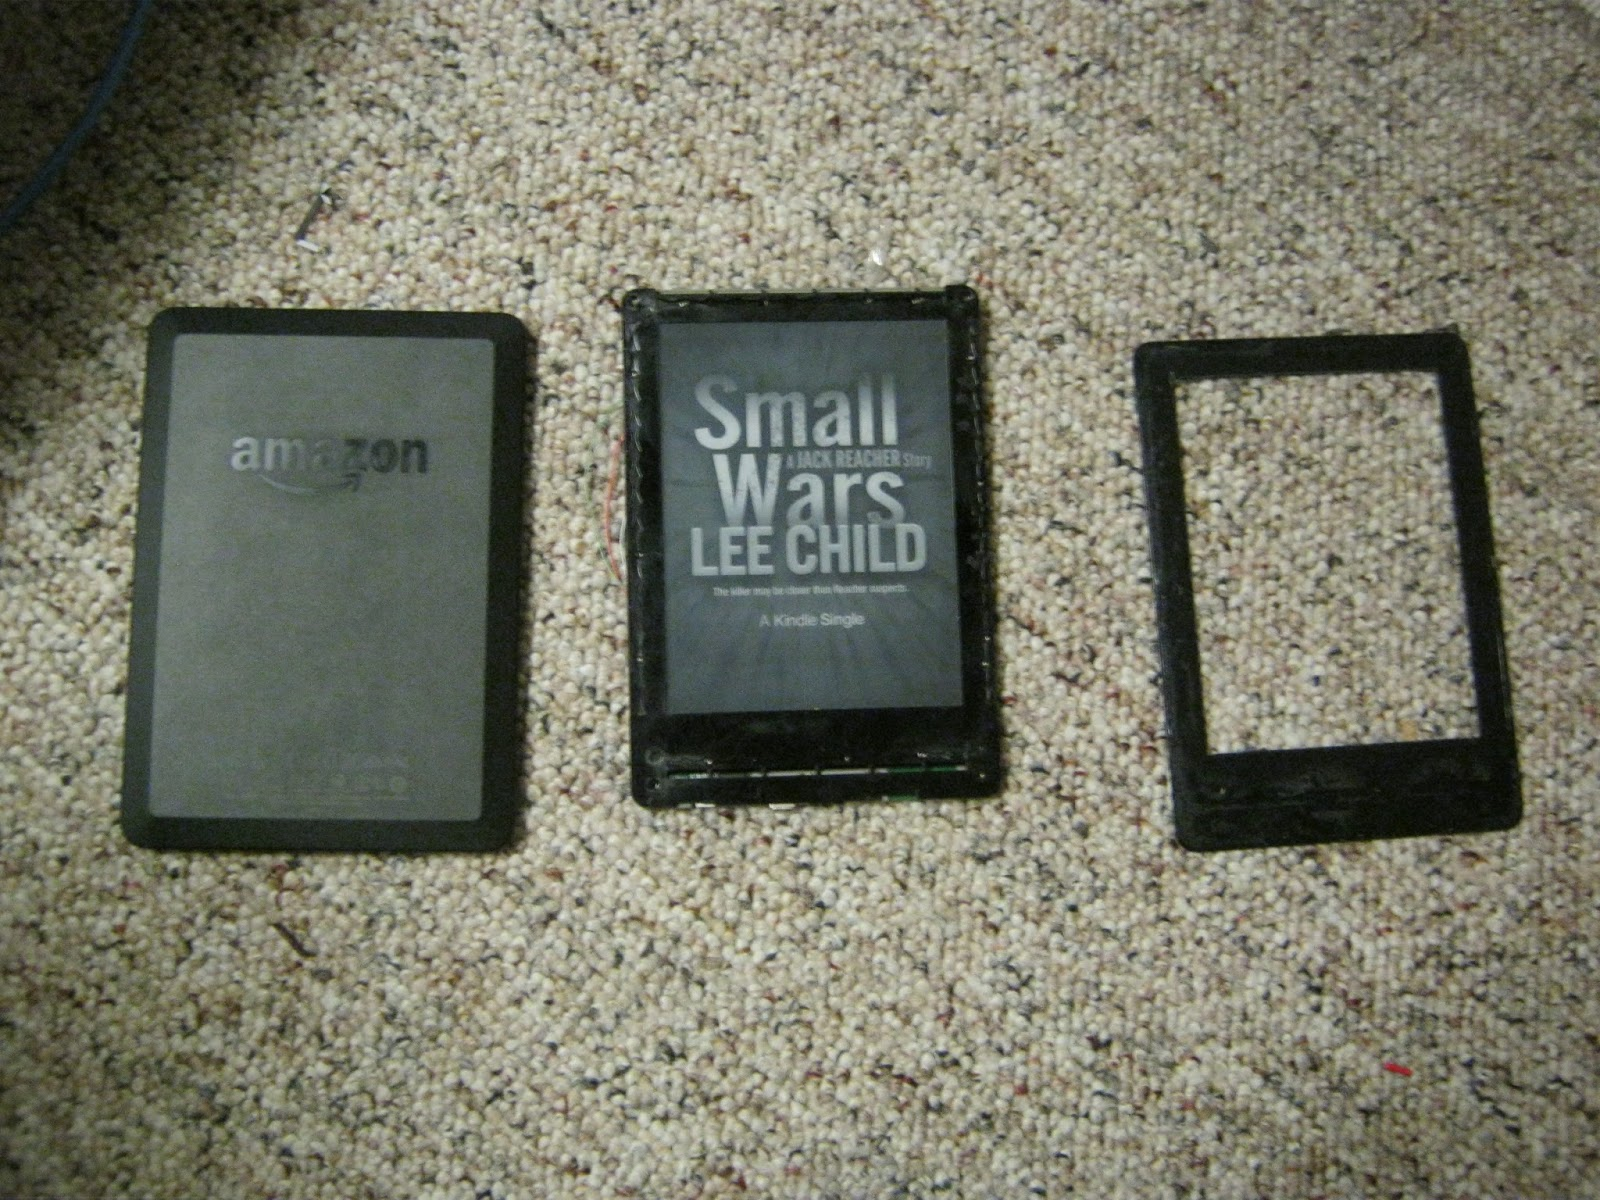 how to tell if a kindle is roote